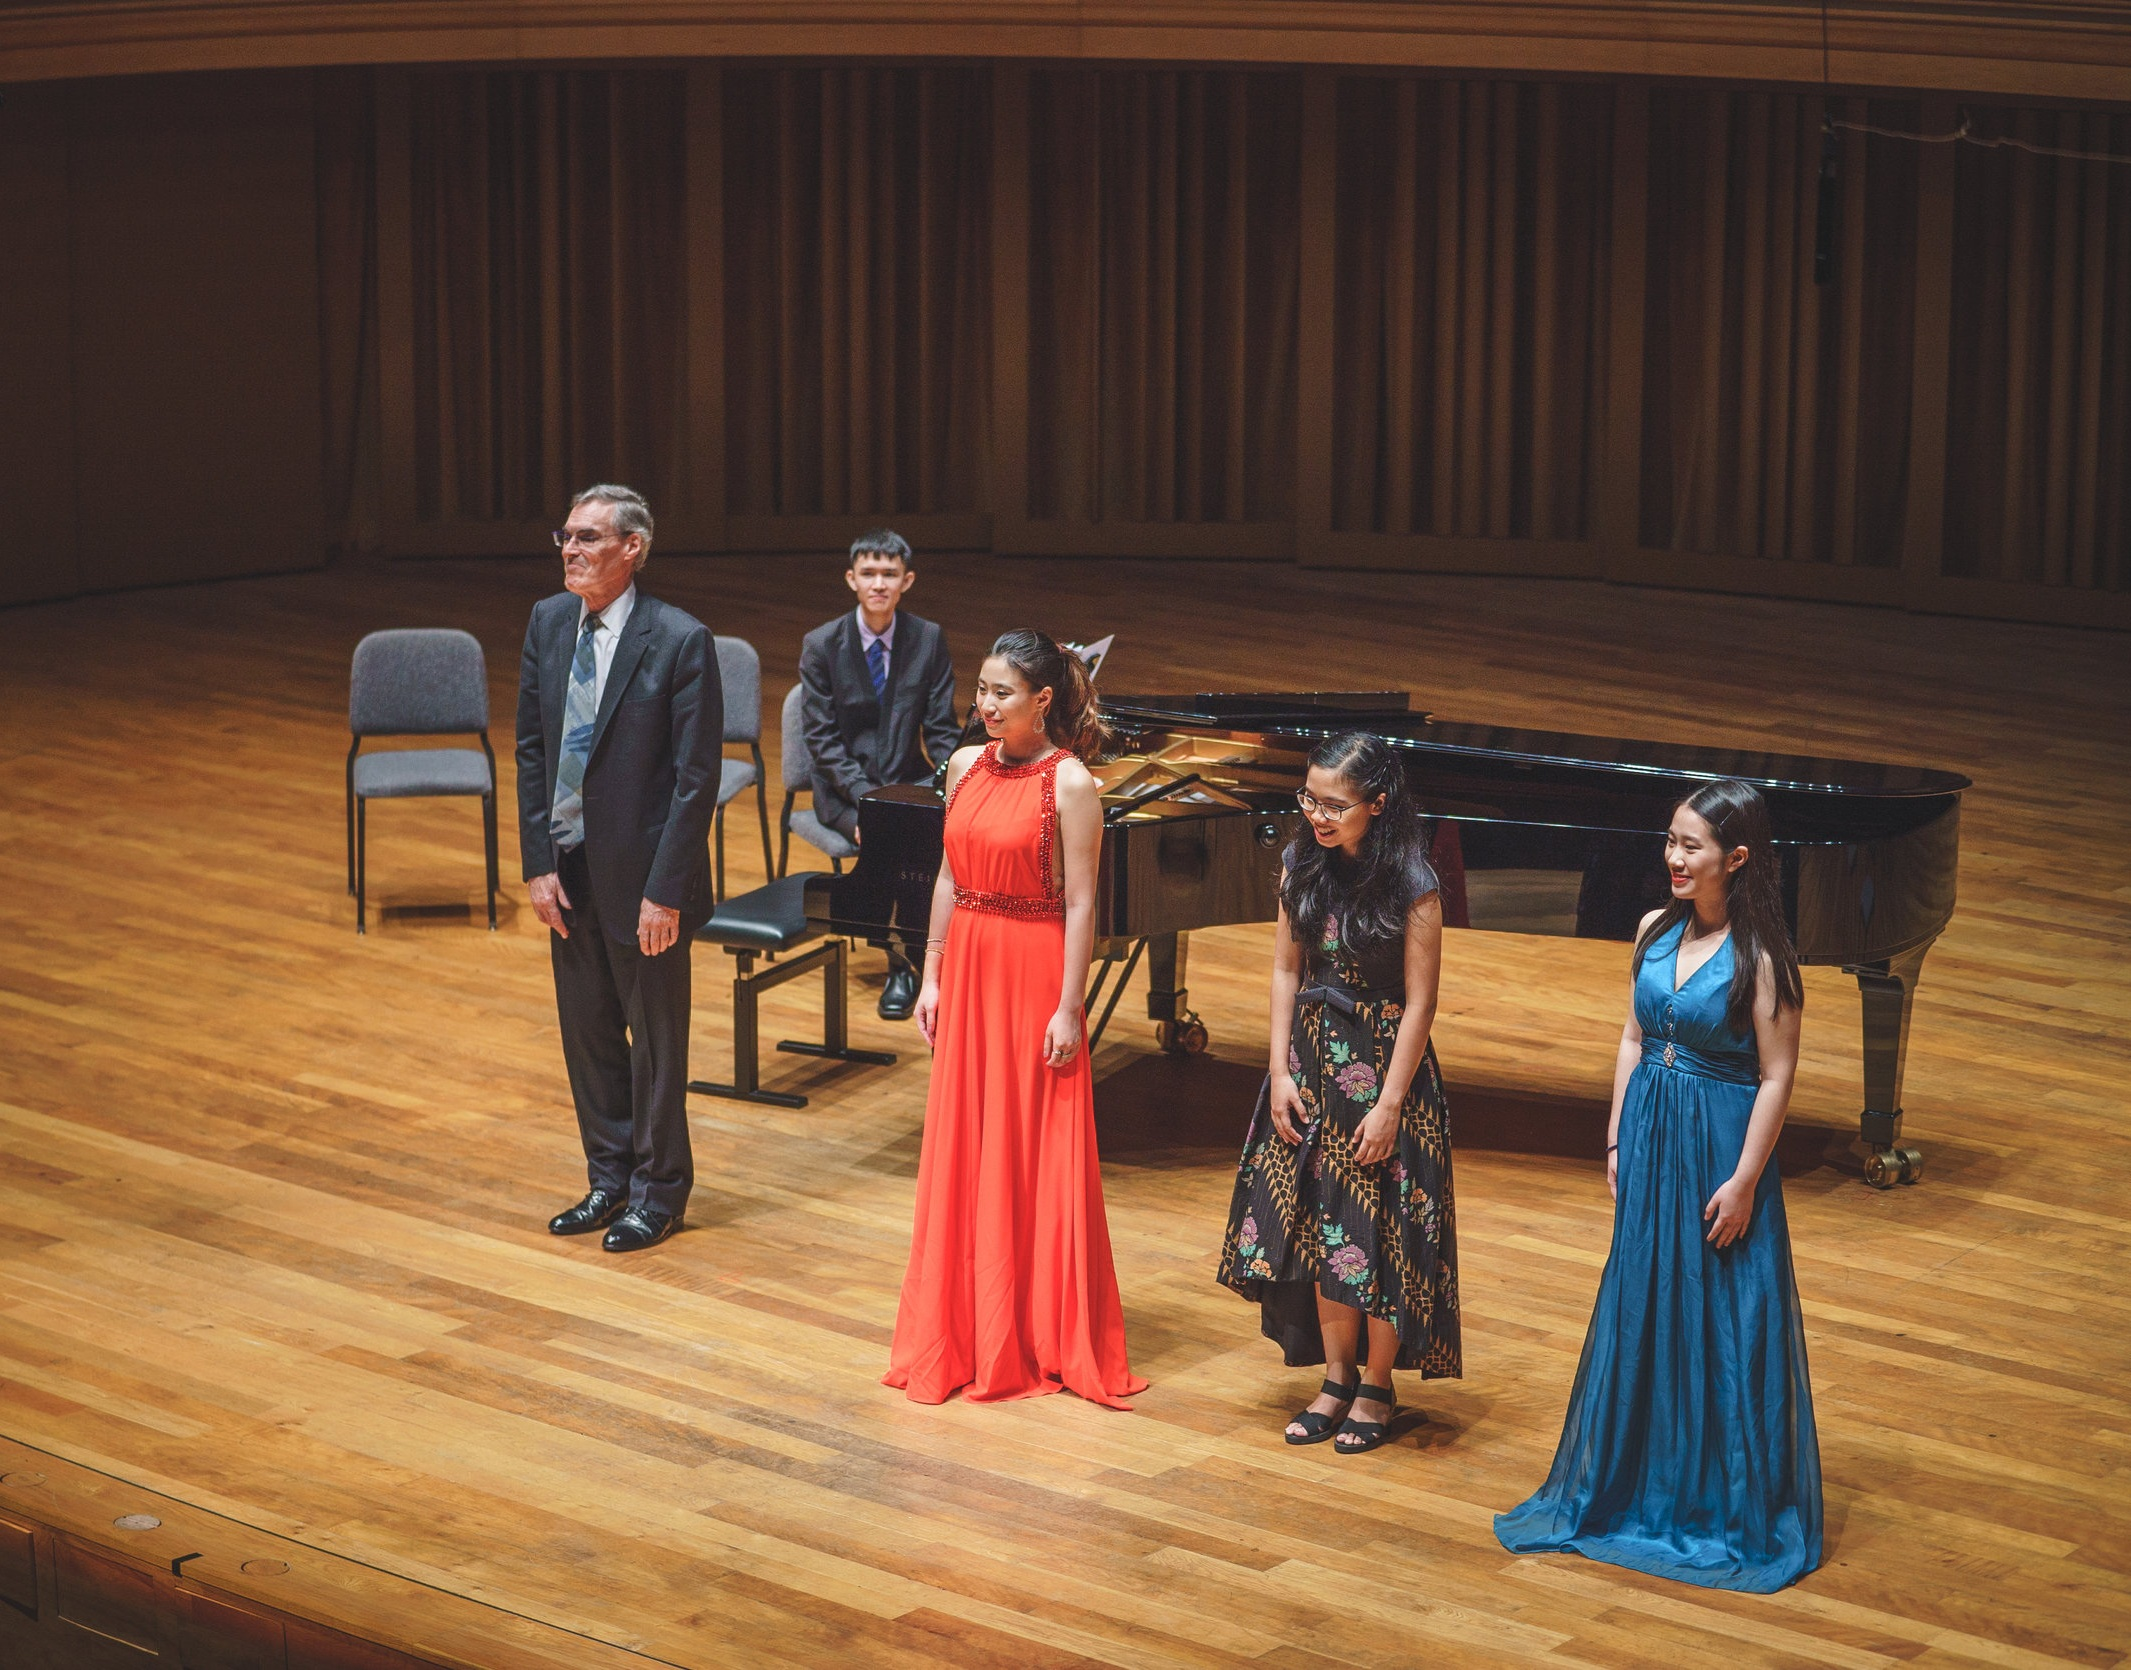 Maggie in performance with Ong Teng Cheong Professors of Music, Masaaki Suzuki and Roger Vignoles.